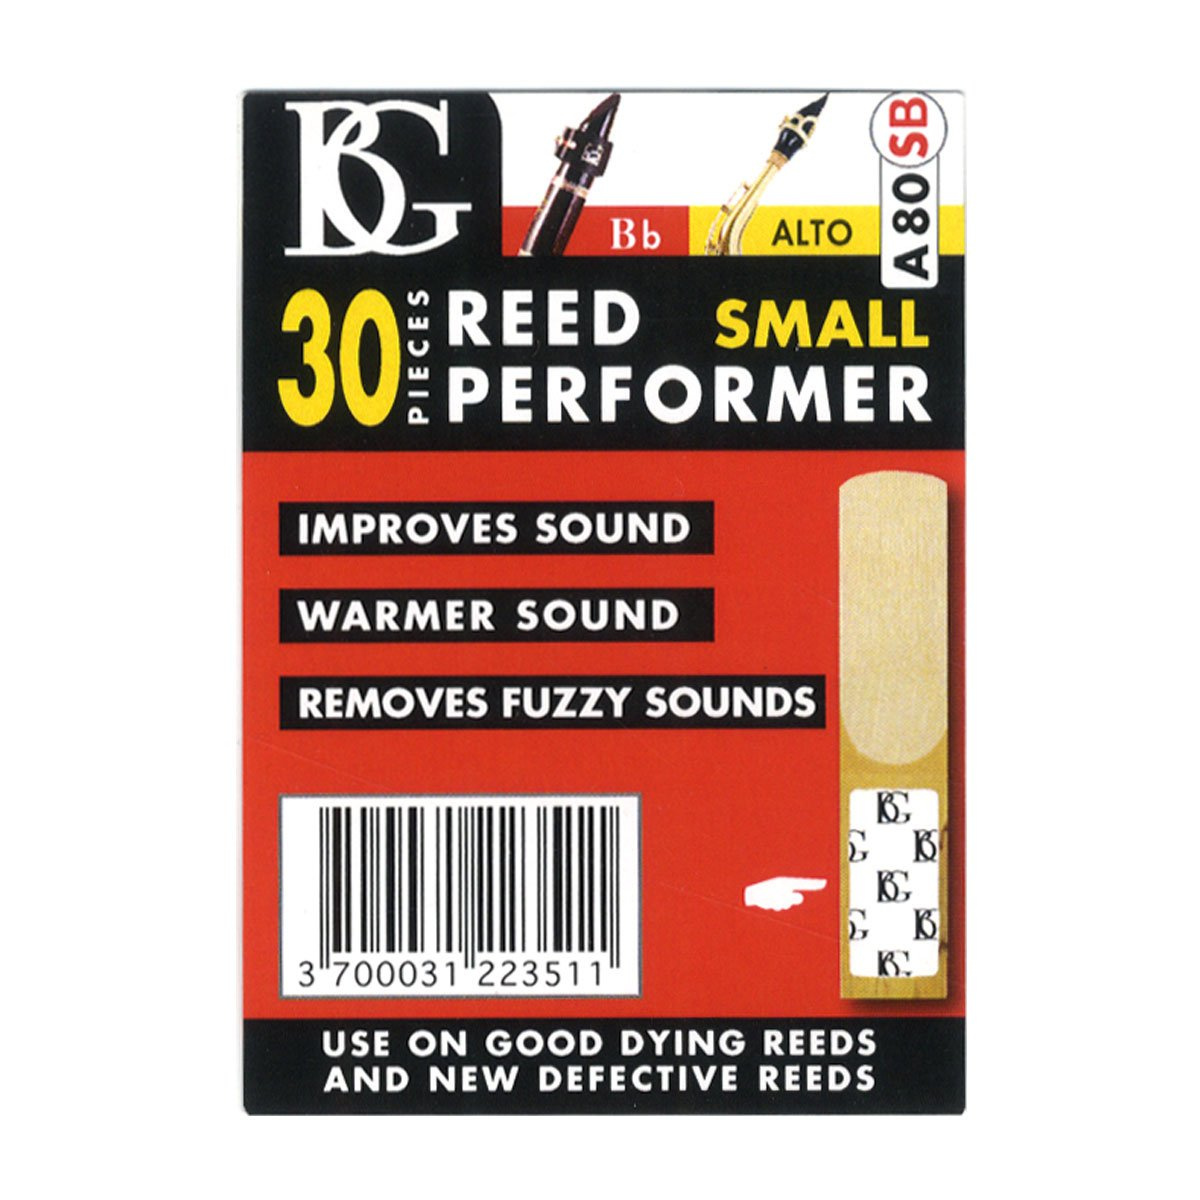 BG A80SB Reed Performance Savers - Small (30 Count)